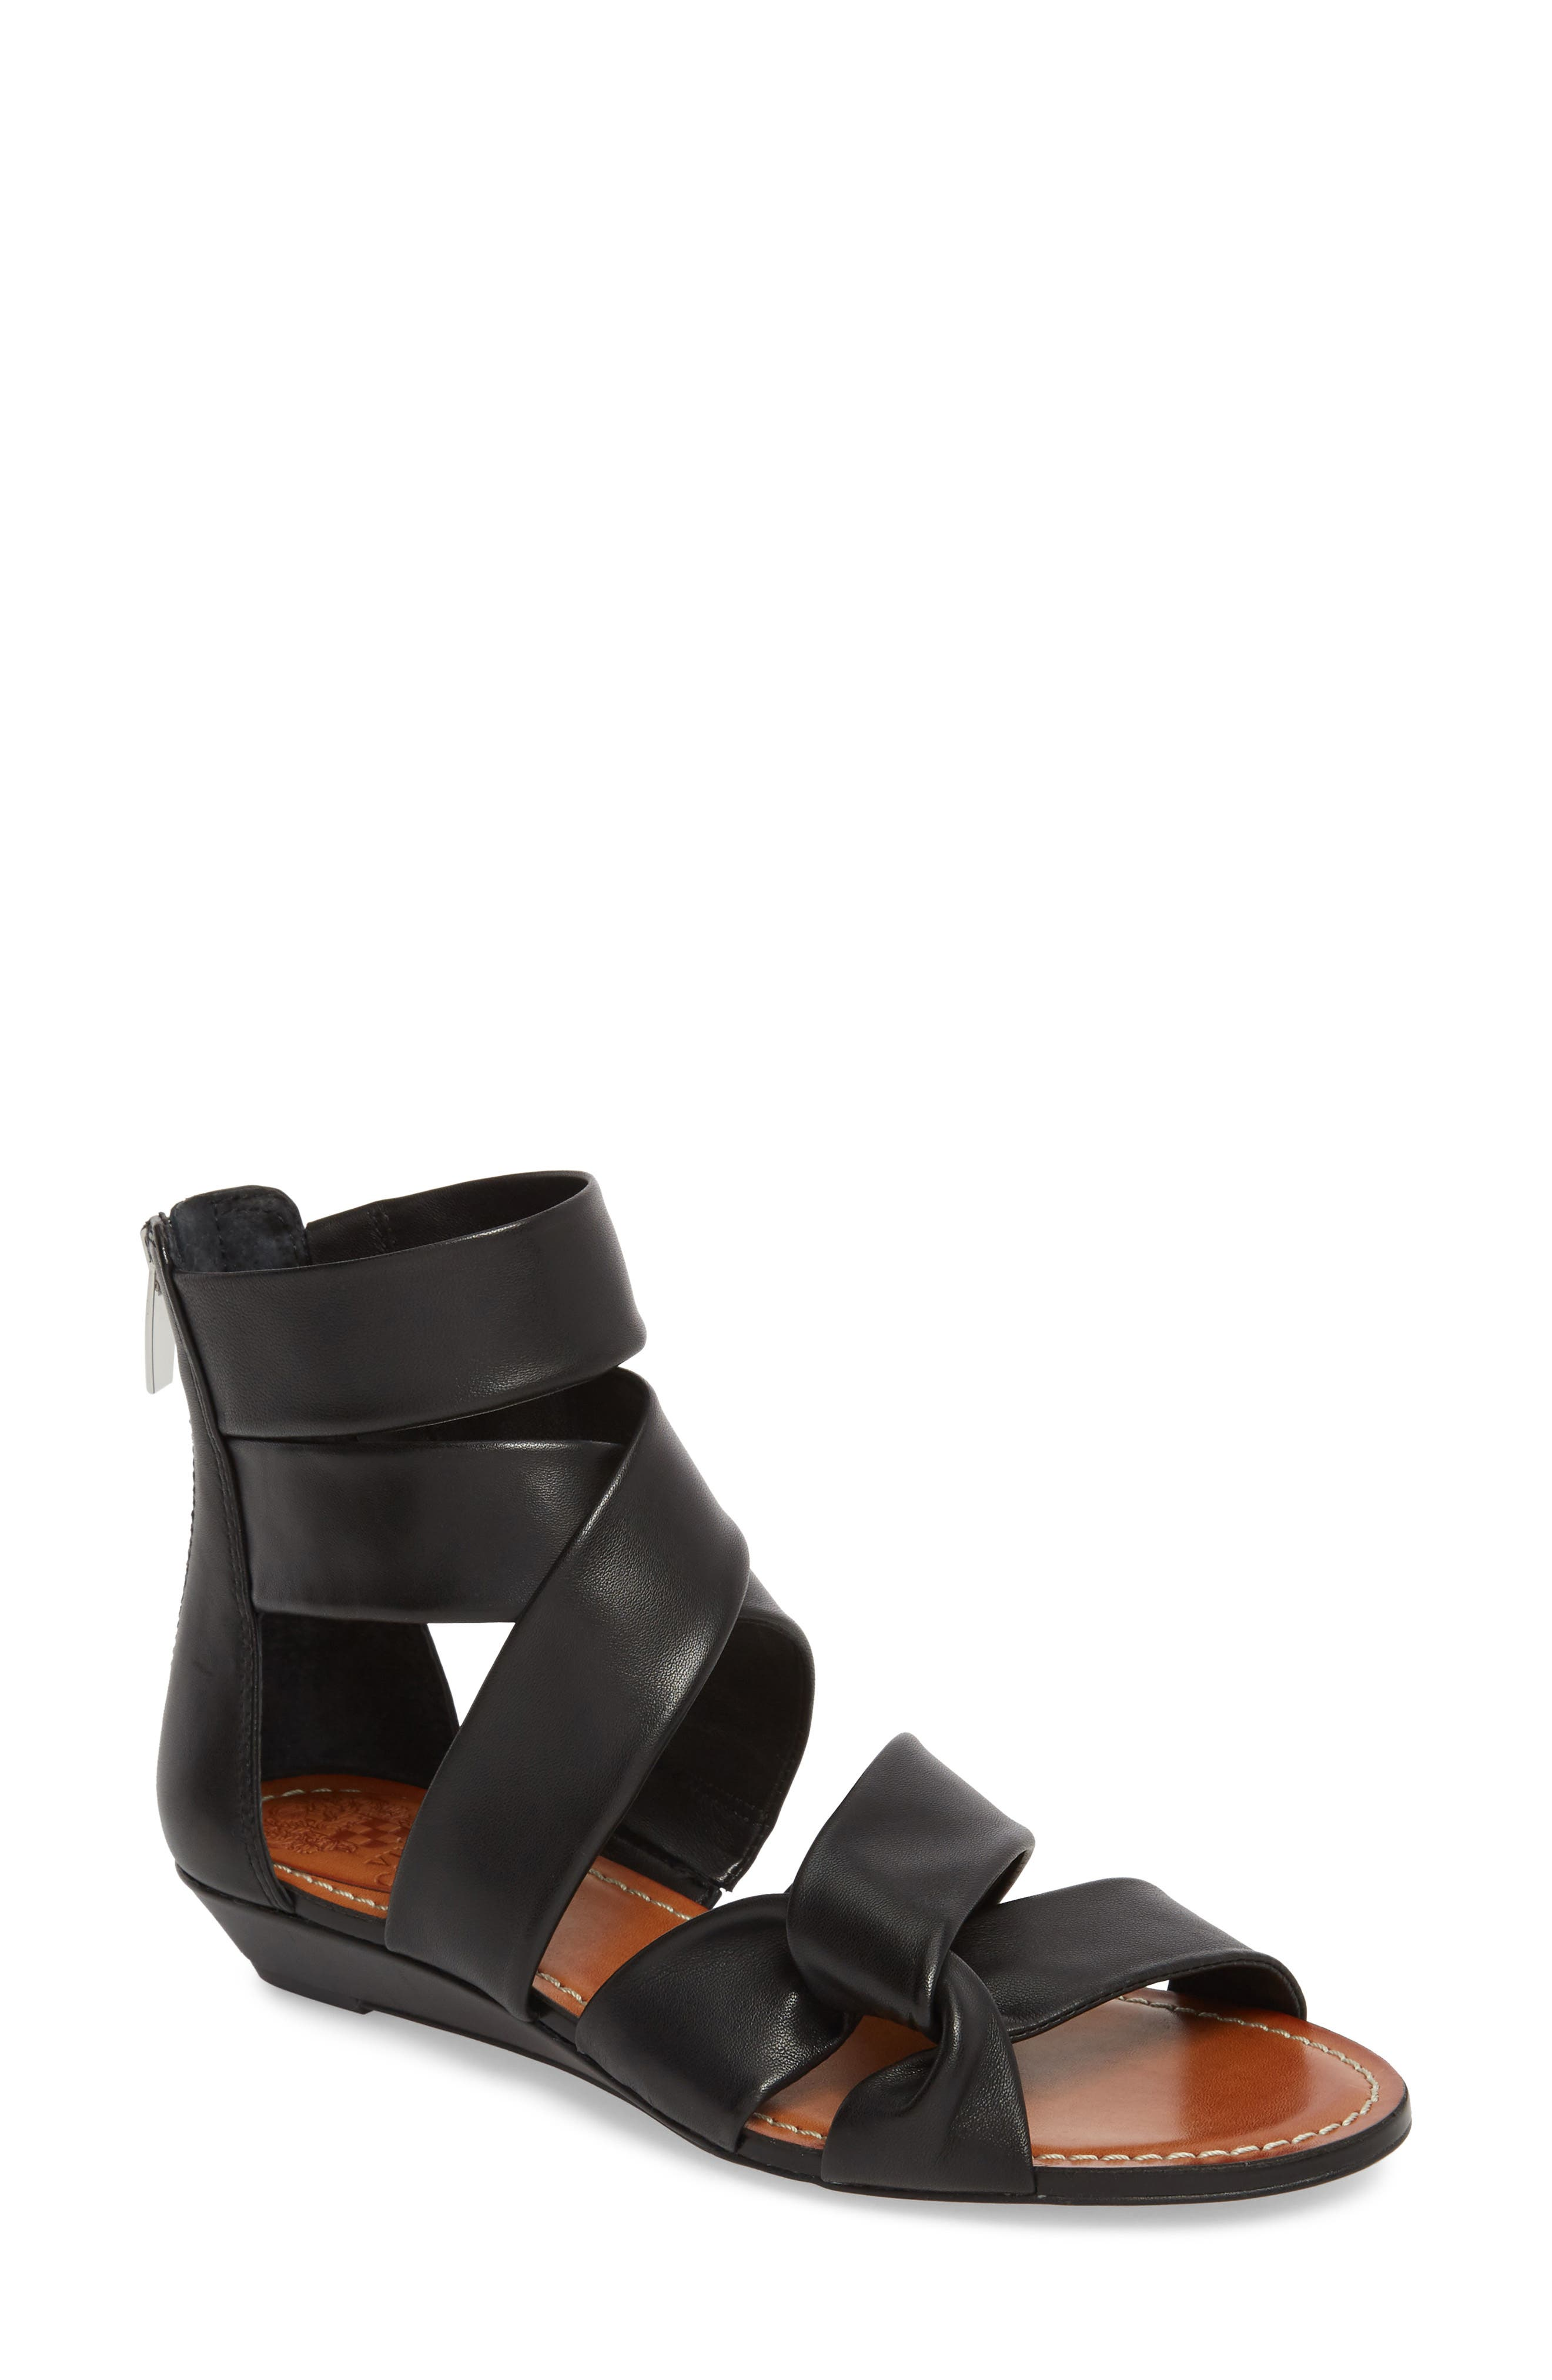 Seevina Low Wedge Sandal,                             Main thumbnail 1, color,                             BLACK LEATHER